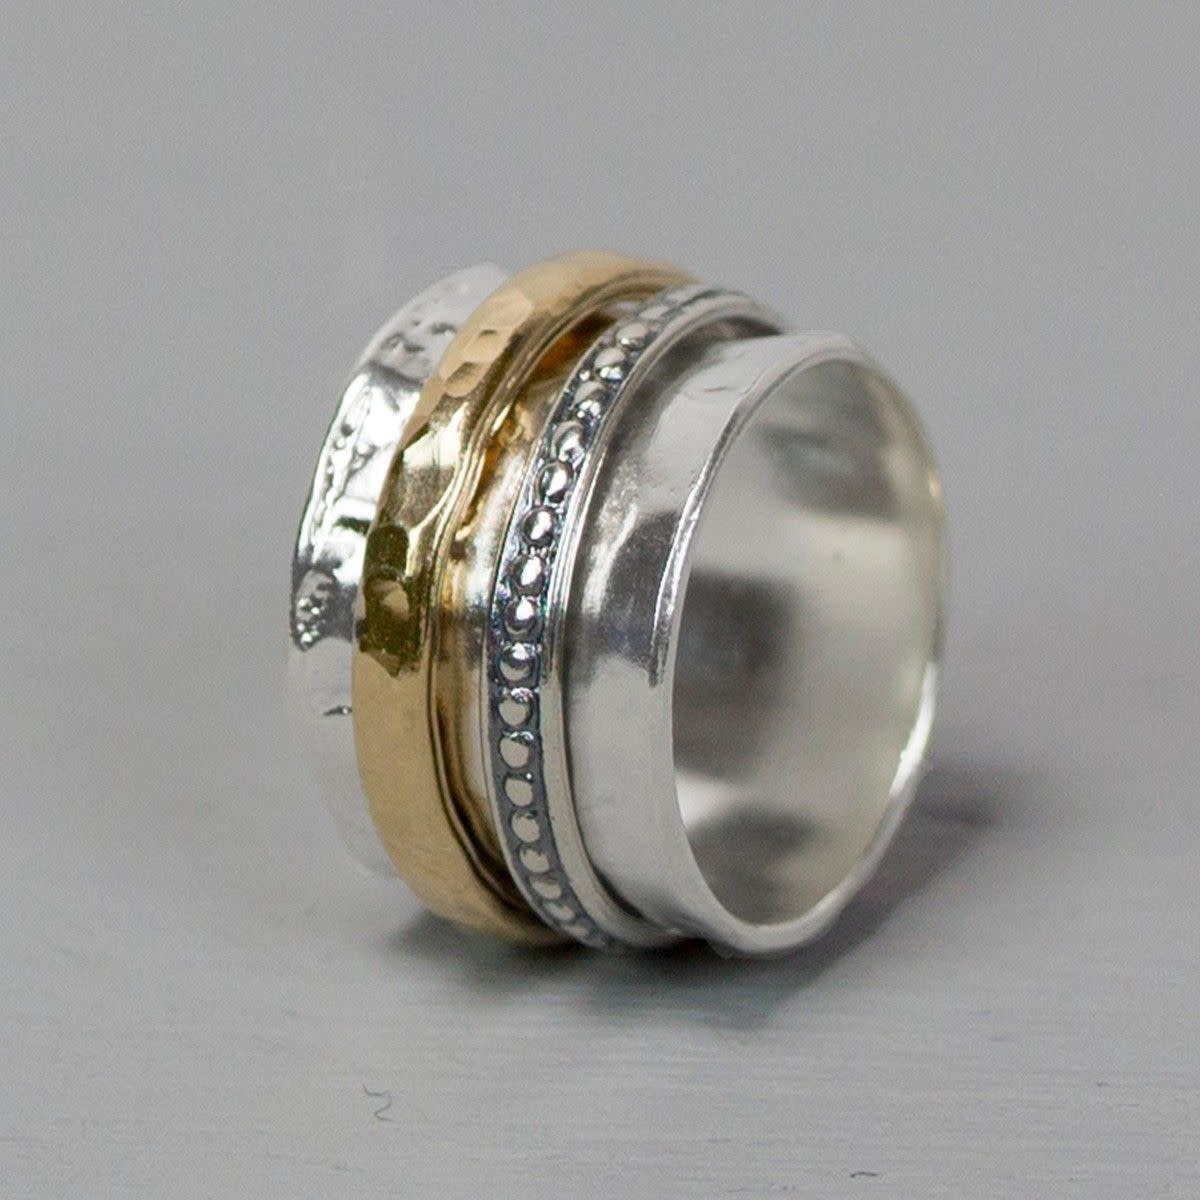 Ring Silver + Gold Filled 20099-7